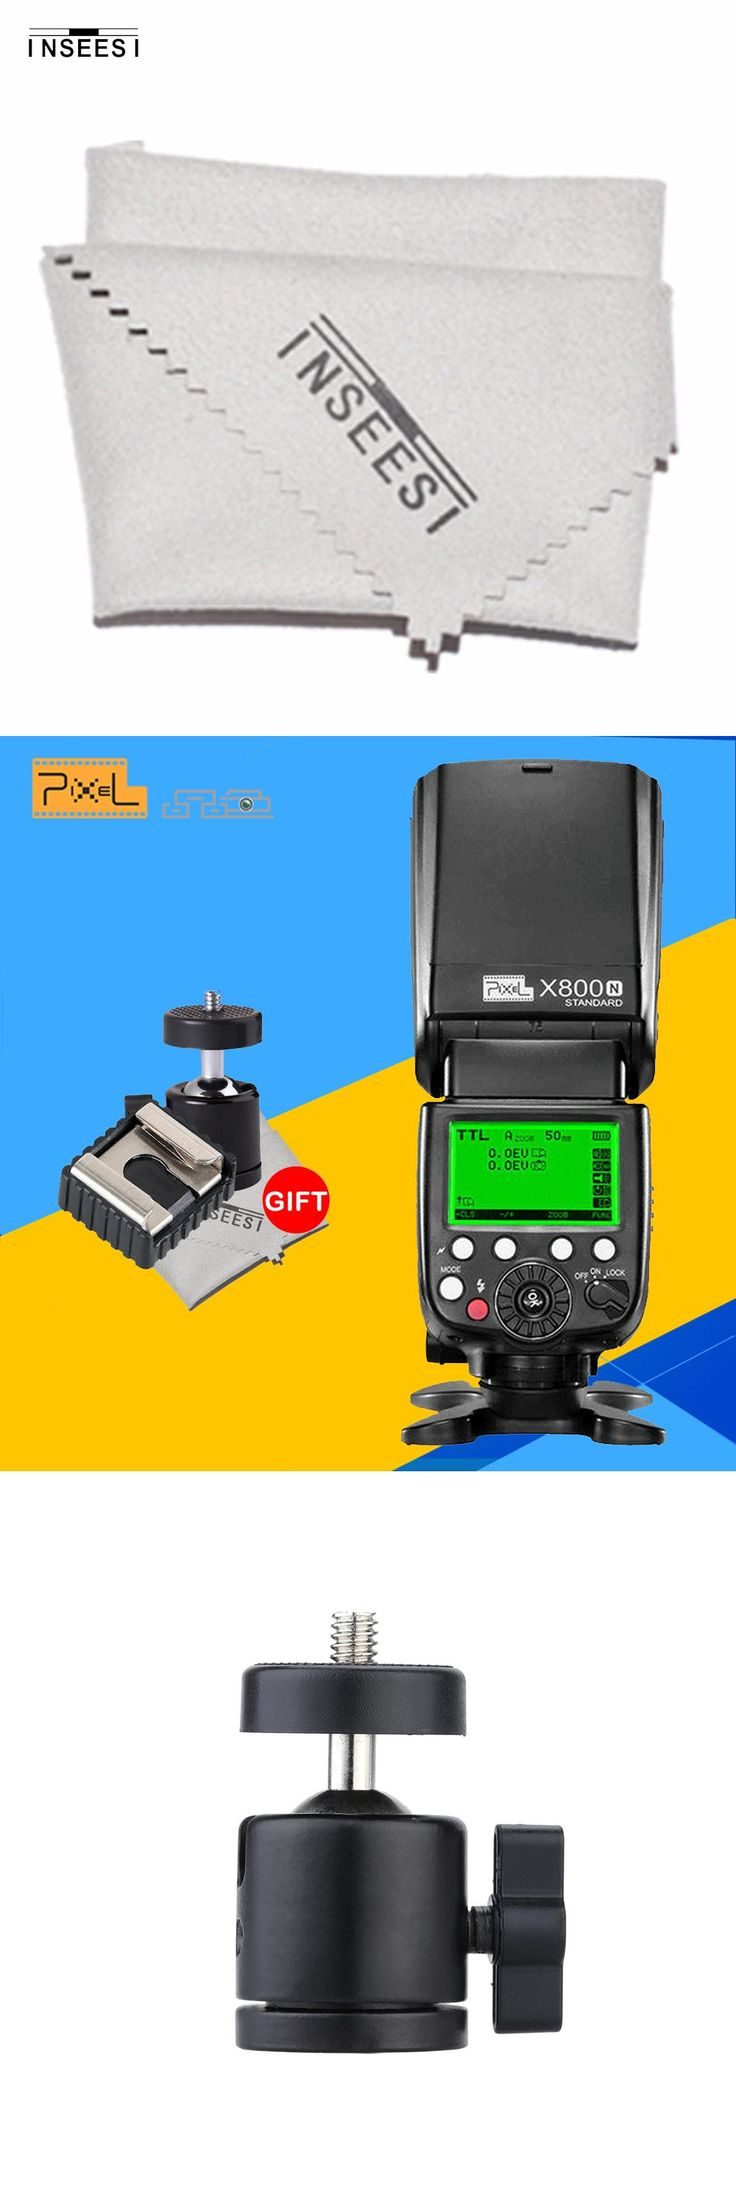 PIXEL X800N Standard Wireless TTL 1/8000s HSS Flash Speedlight For Nikon D7100 D5200 D90 DSLR Camera vs YONGNUO YN568EX YN-565EX